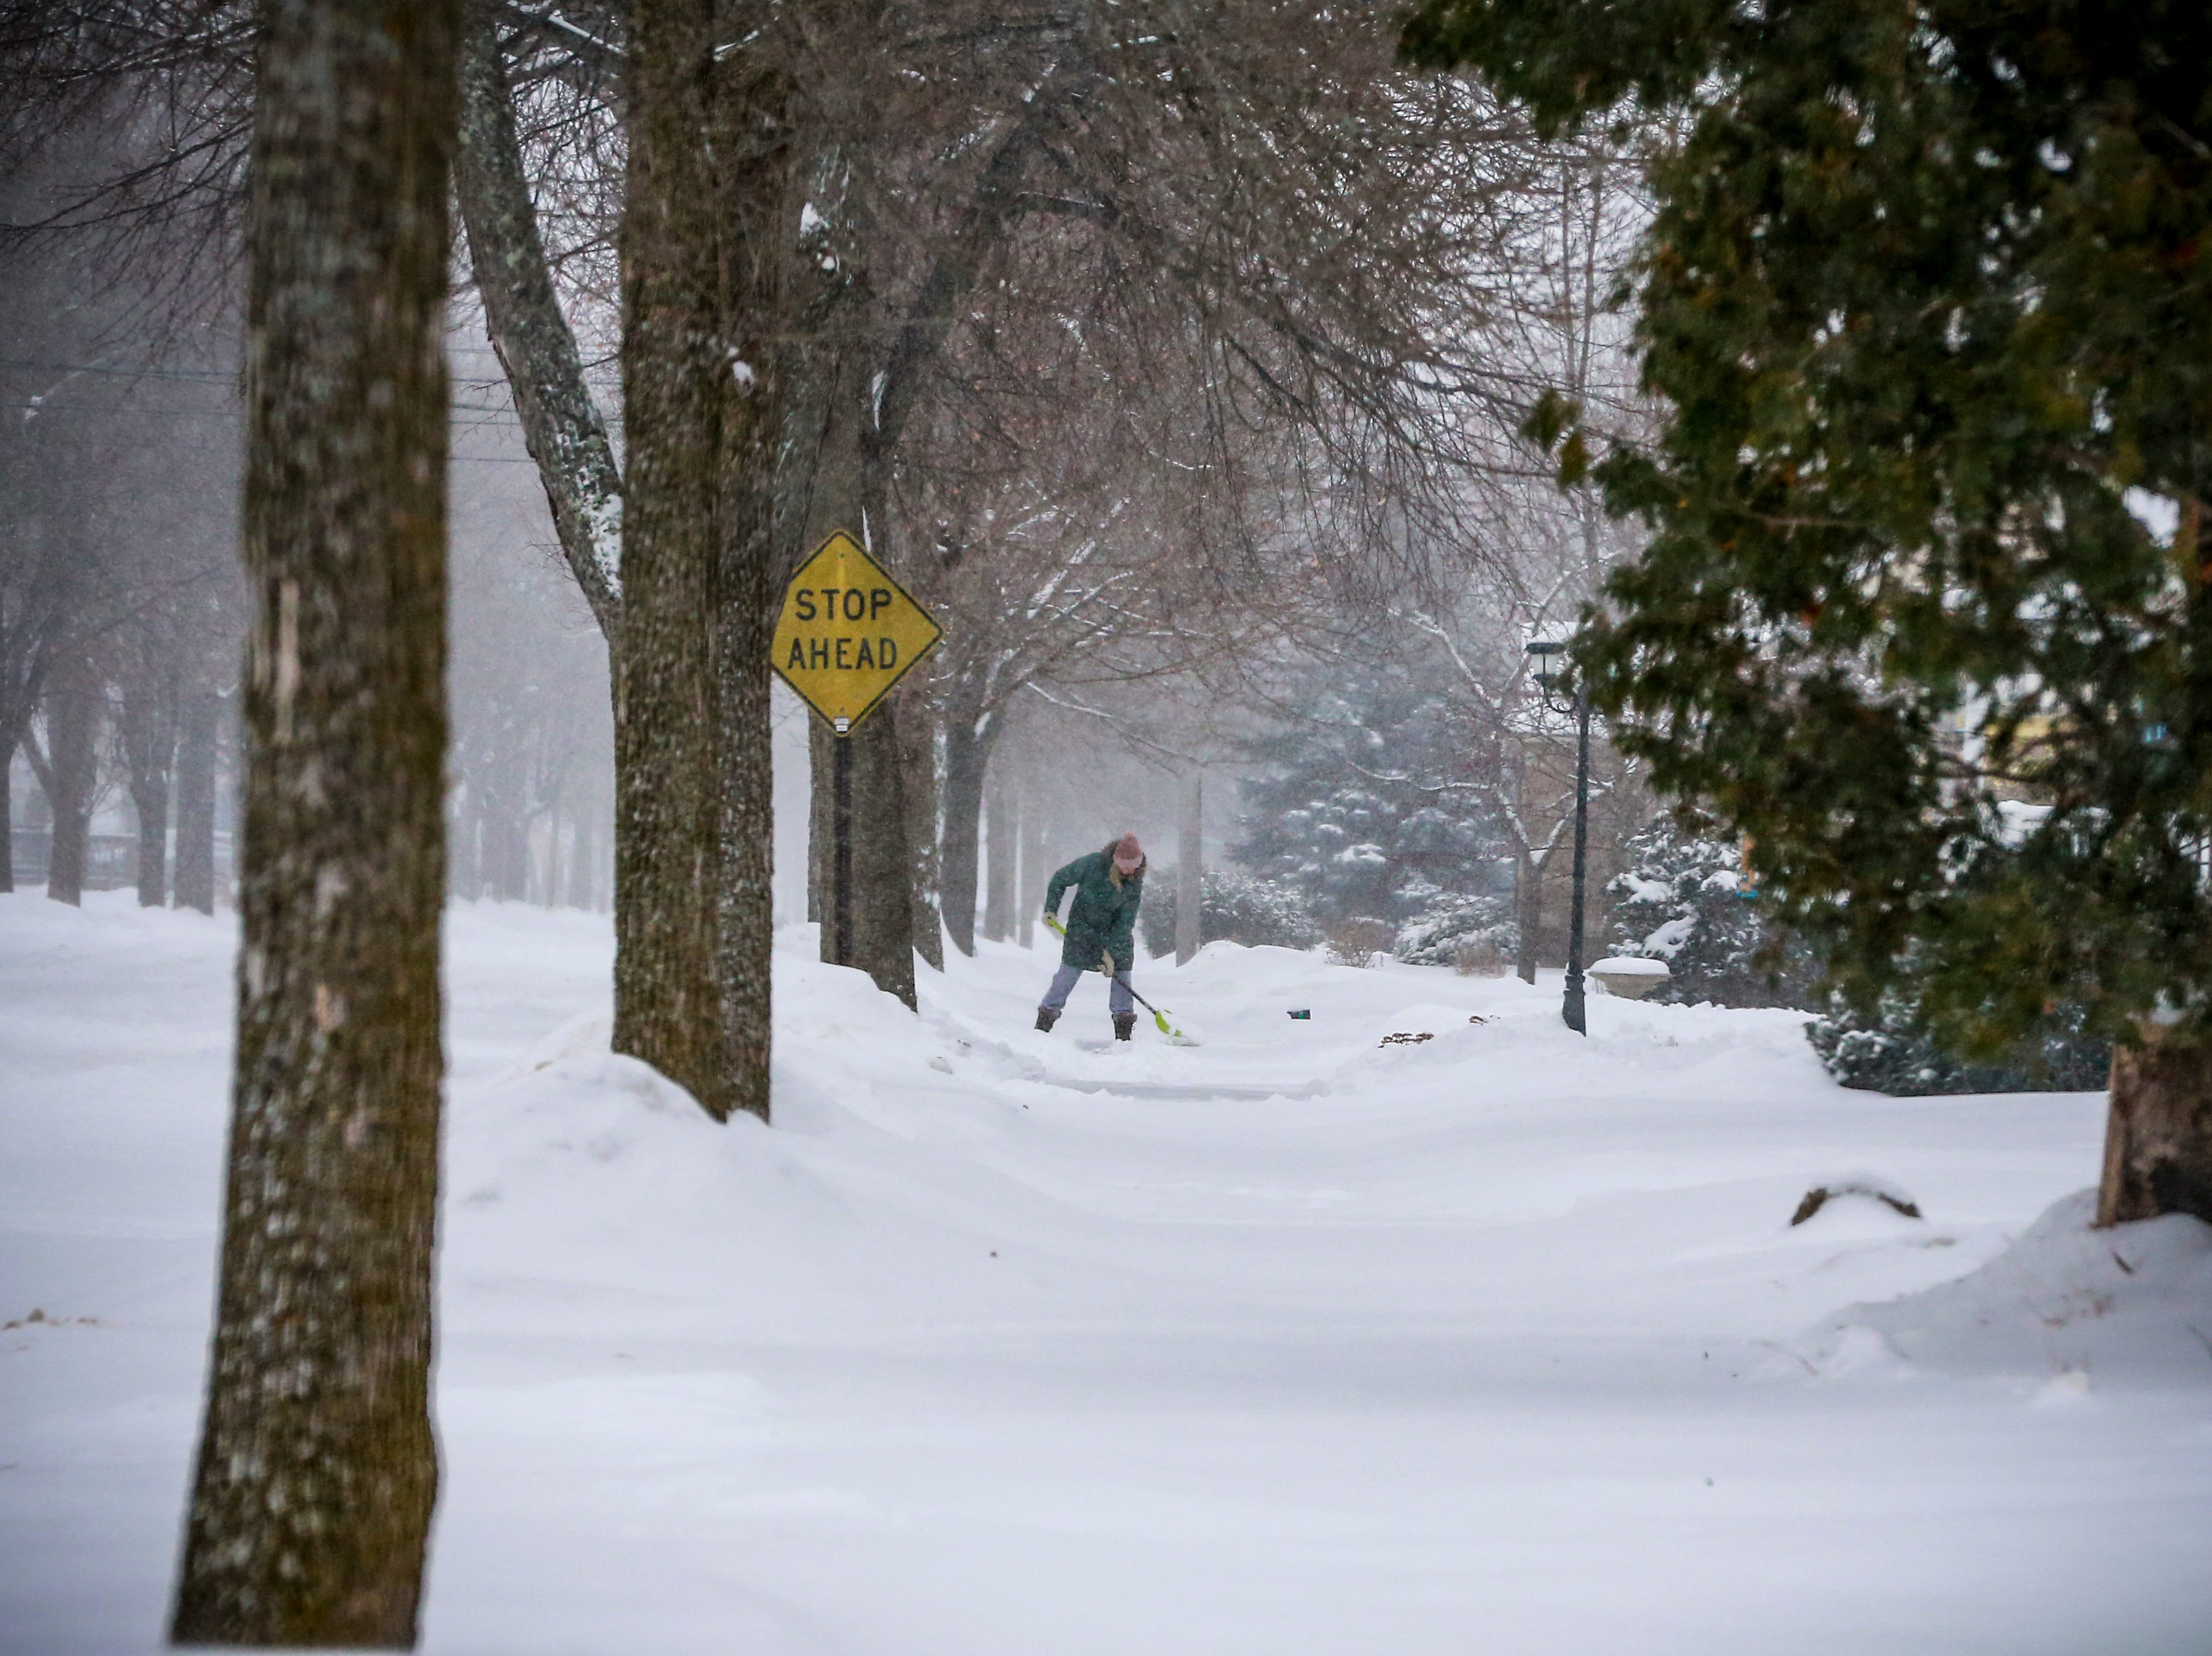 A resident shoveling snow on her property after a snowstorm Monday, Jan. 28, 2019, in Wausau, Wis.